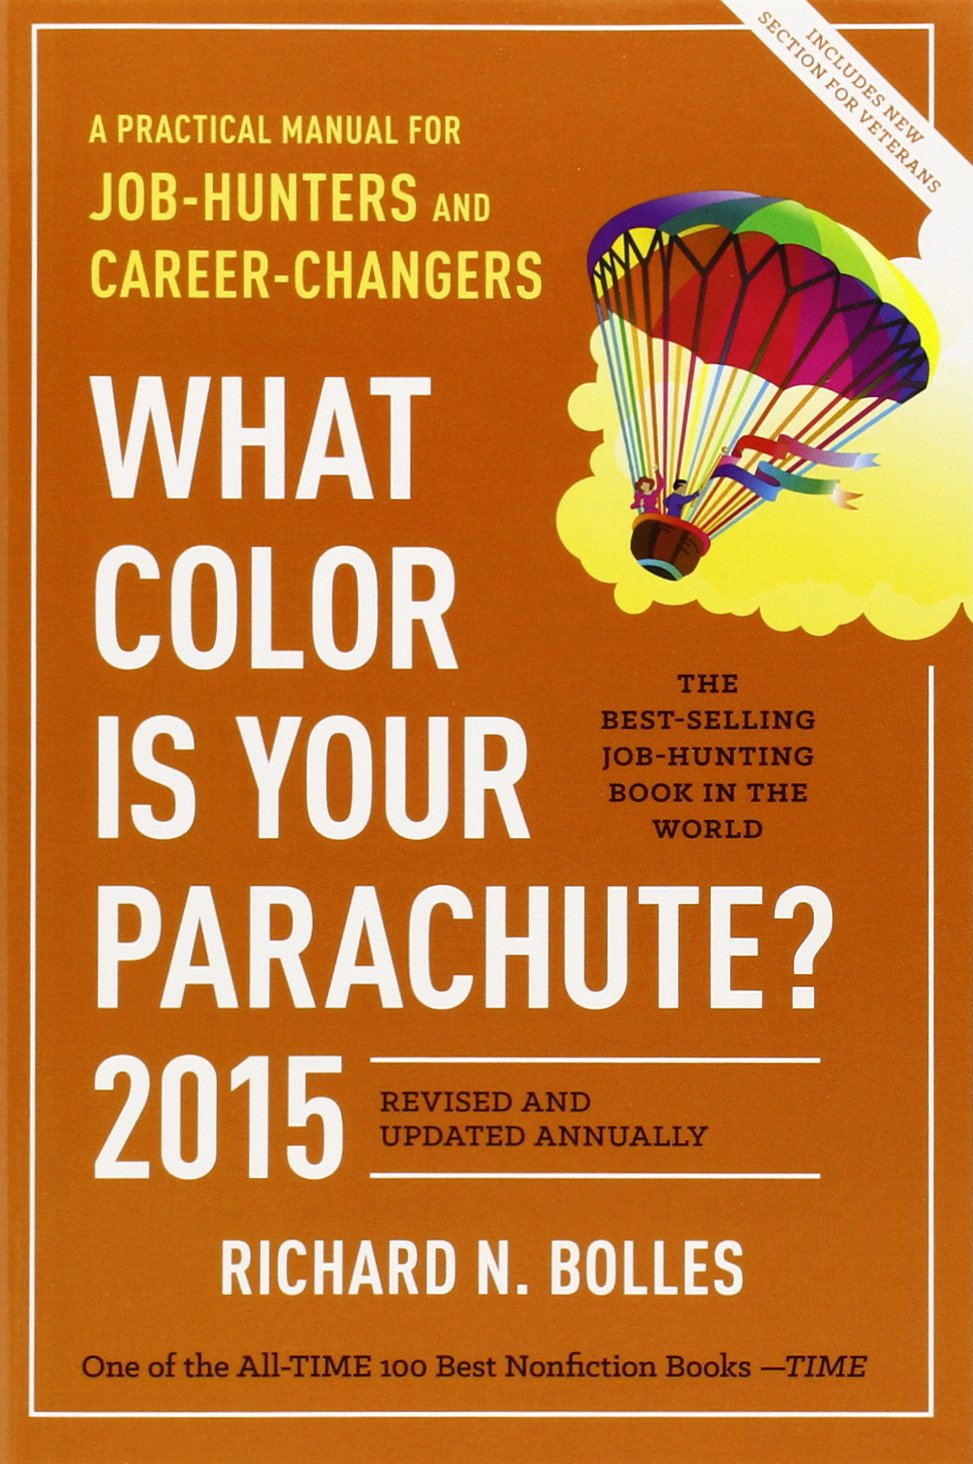 What Color Is Your Parachute? 2015: A Practical Manual for Job ...